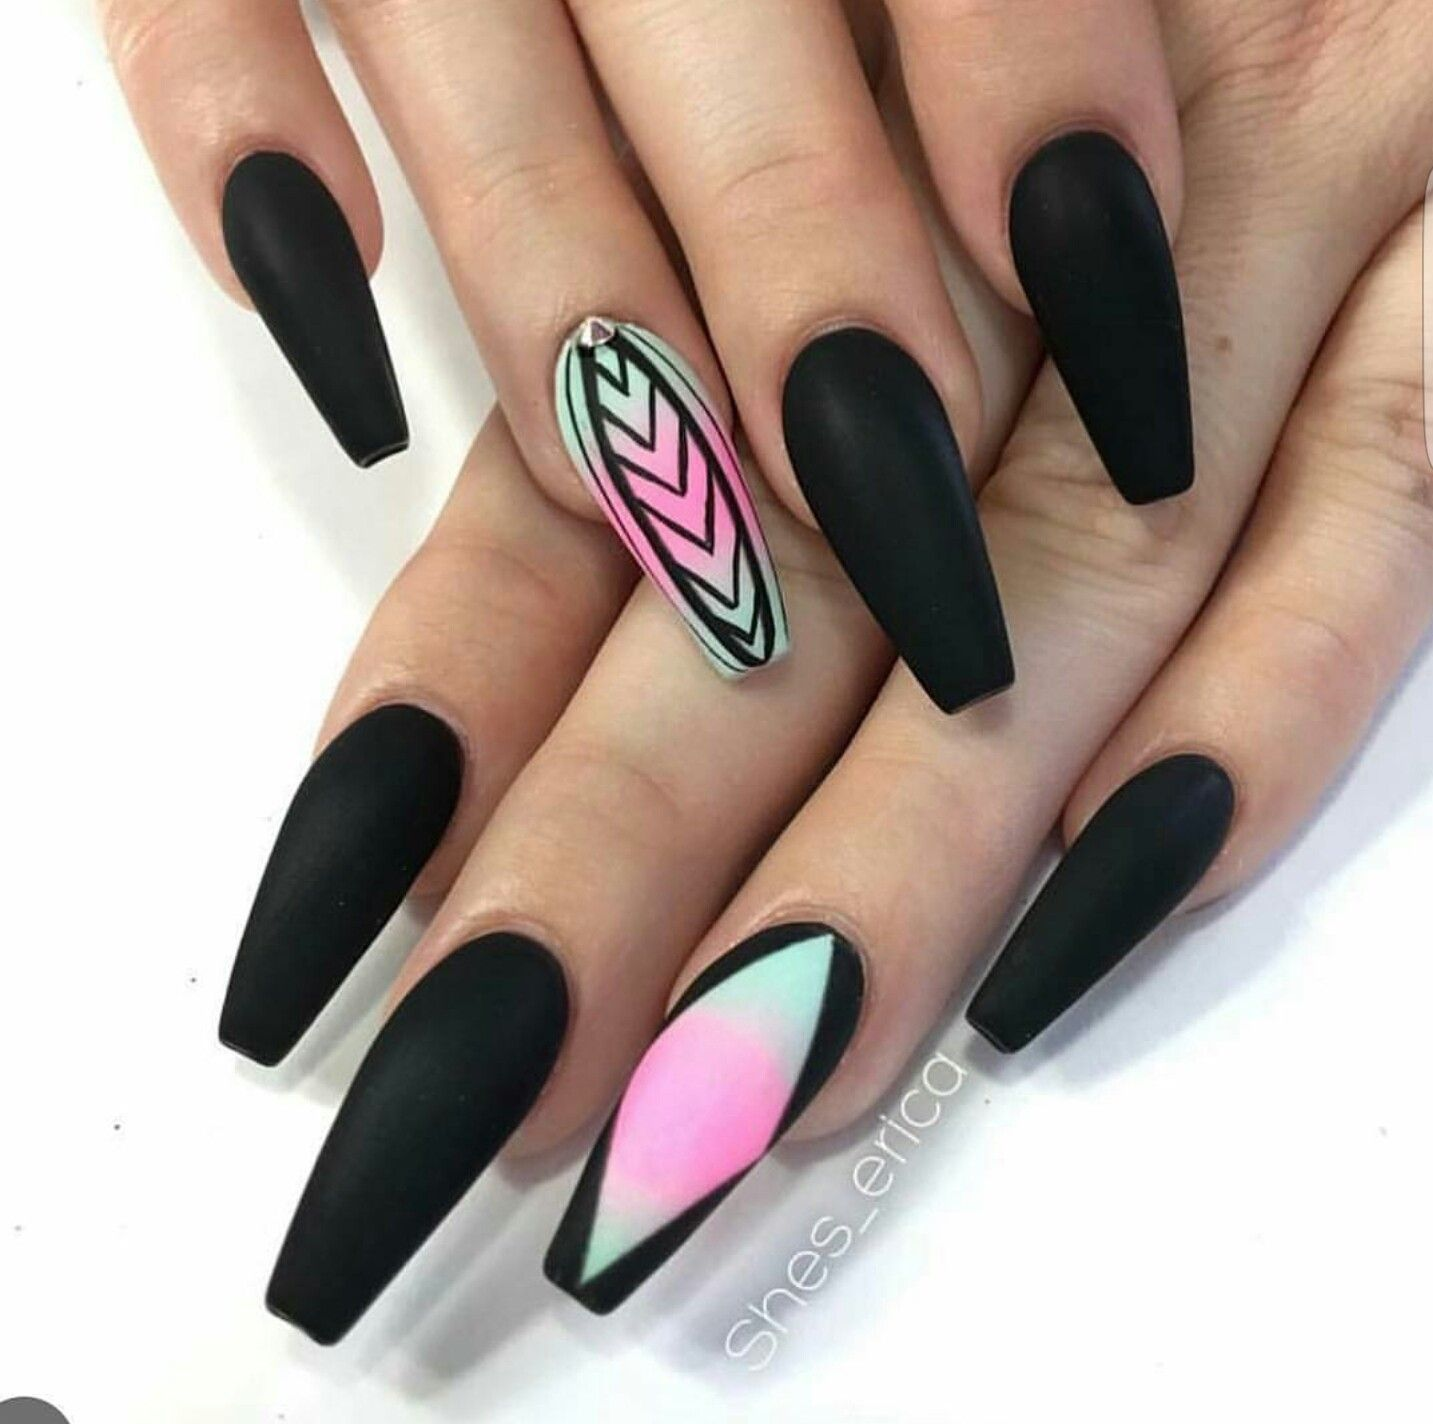 Pin by A Divine Presence 🍃 on dick grabbers | Pinterest | Nail nail ...